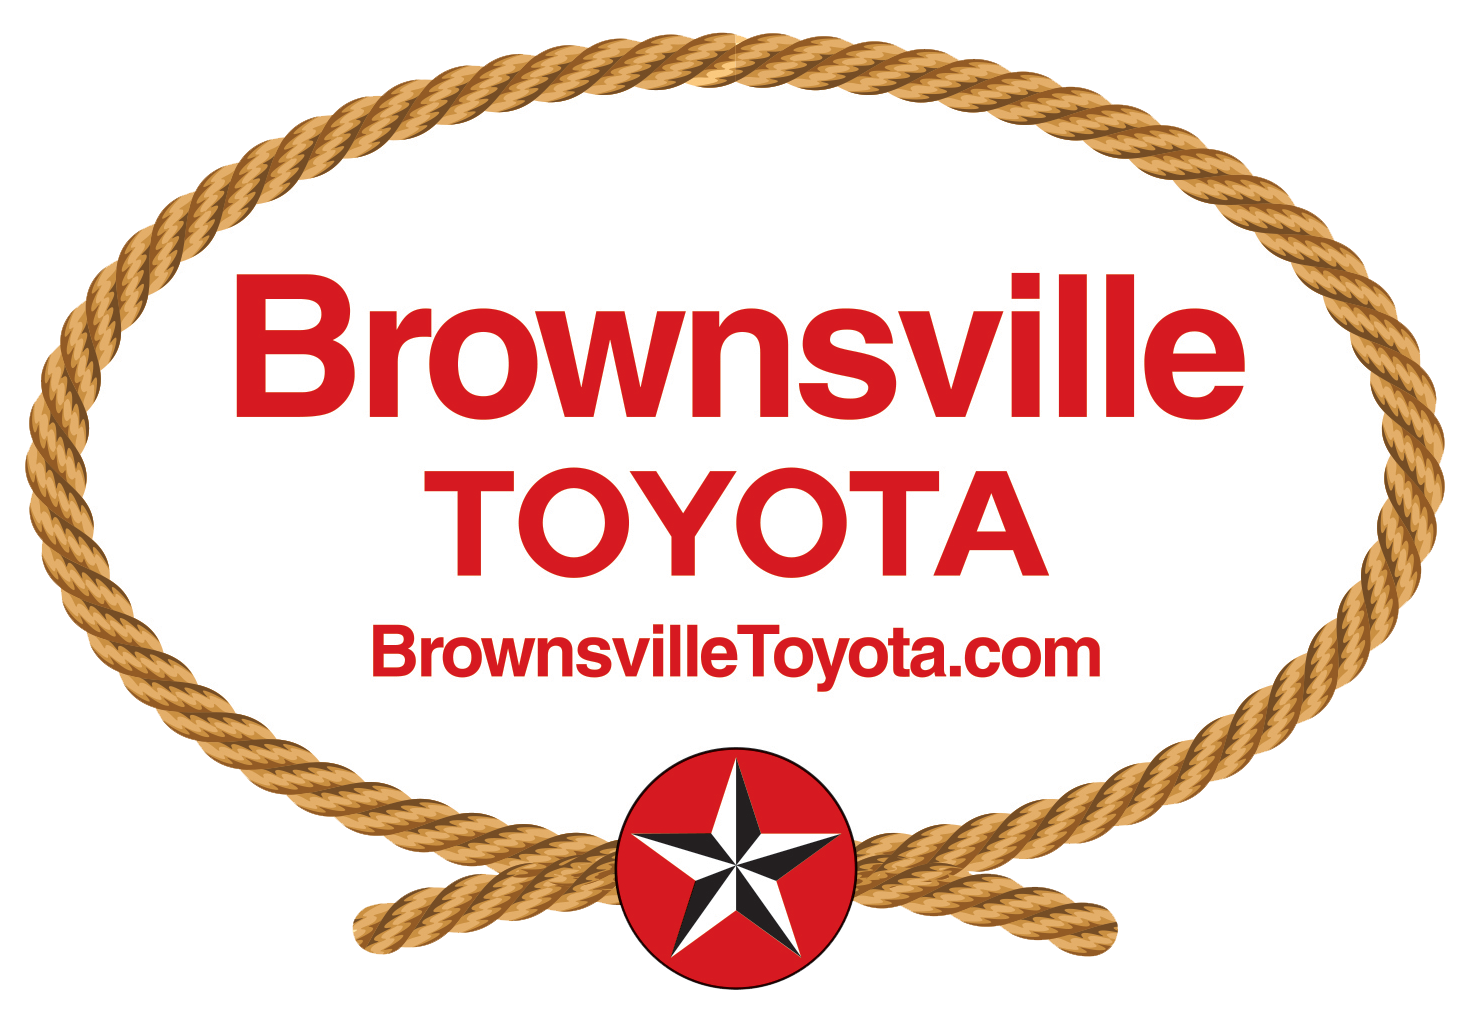 New Cars For Sale In Brownsville Tx Brownsville Toyota Page 1